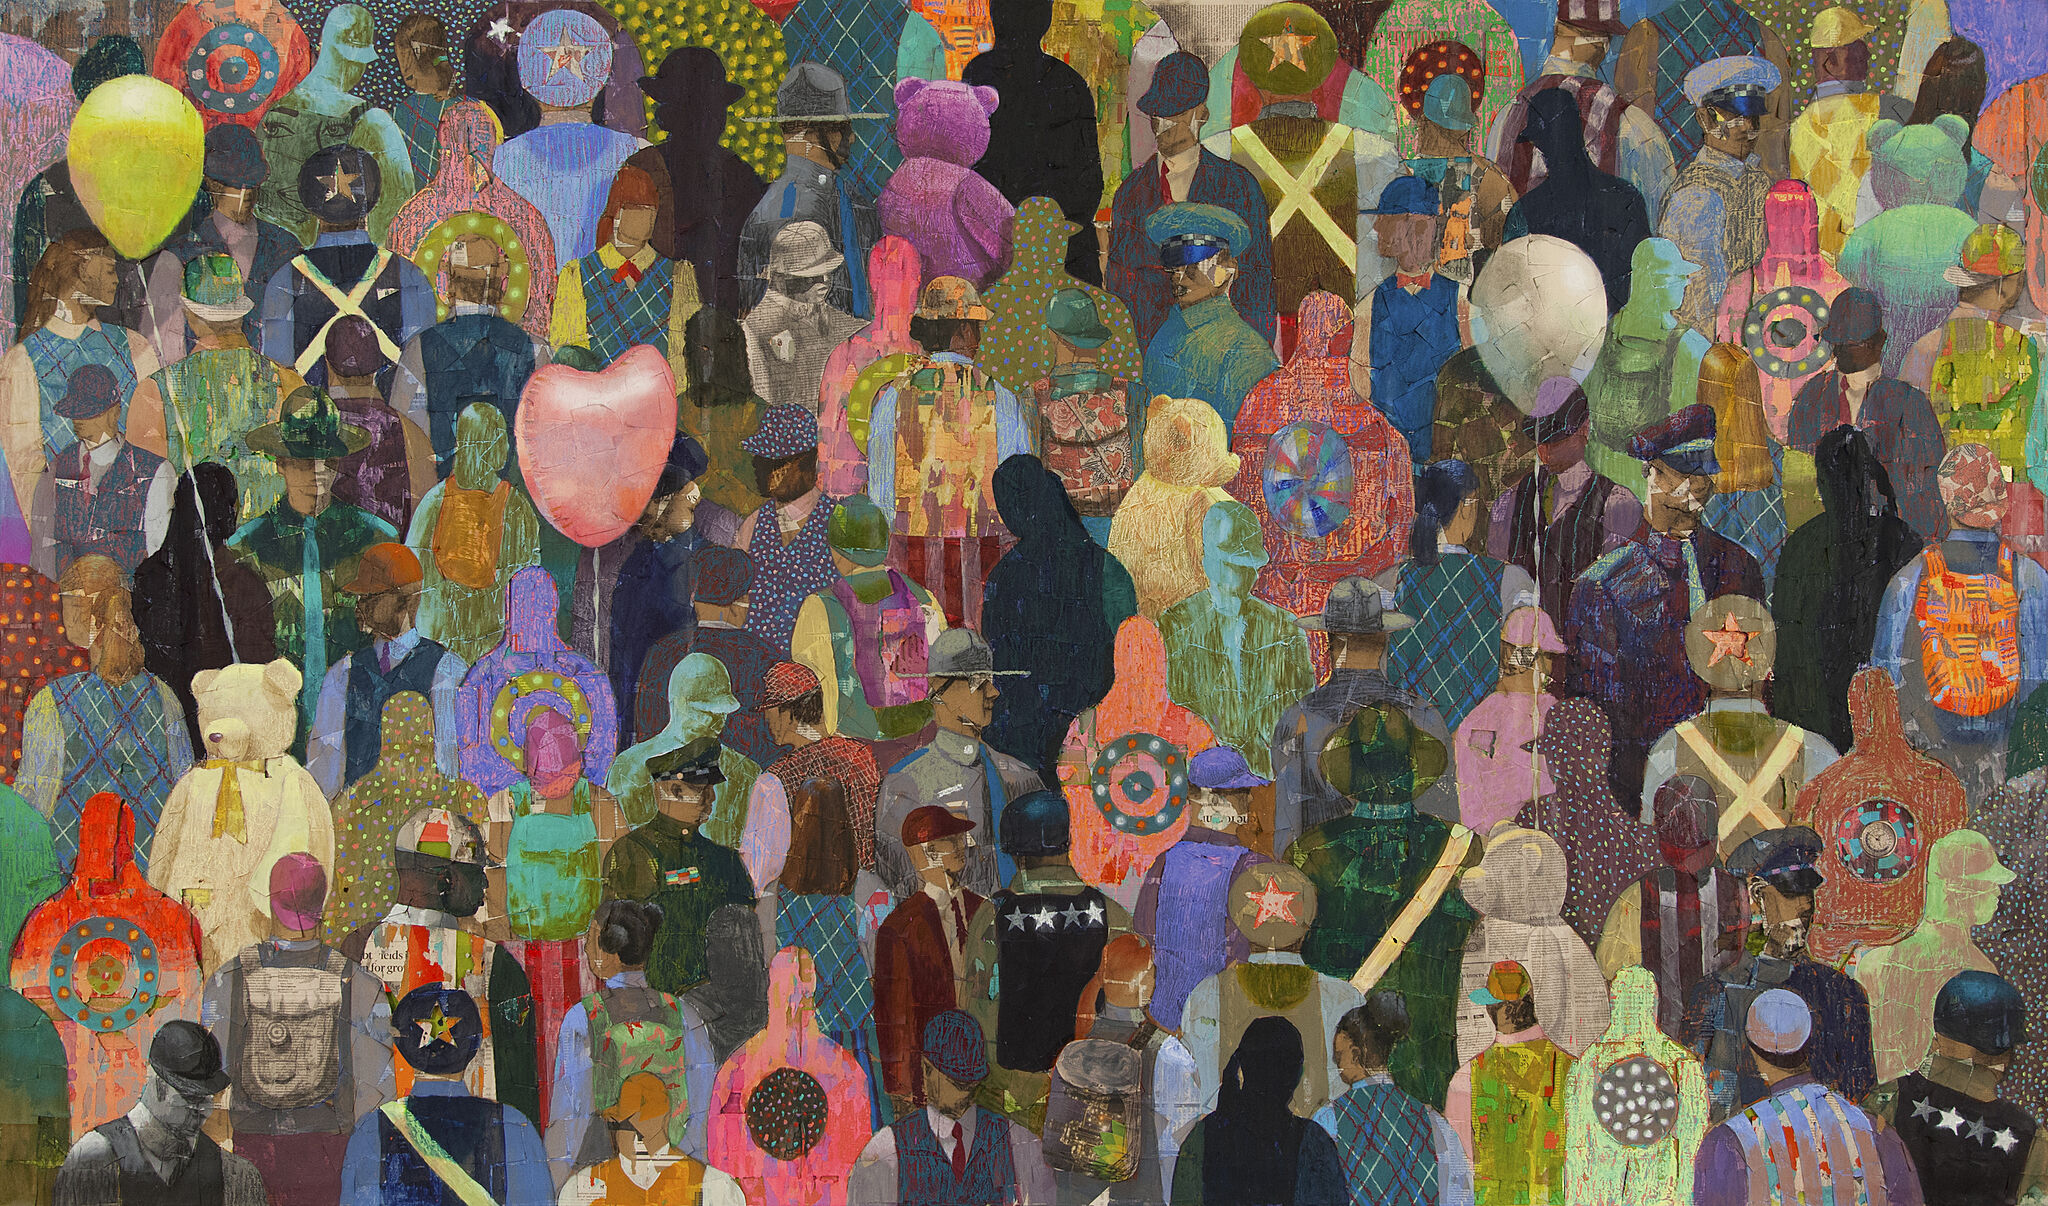 Artwork featuring many people.